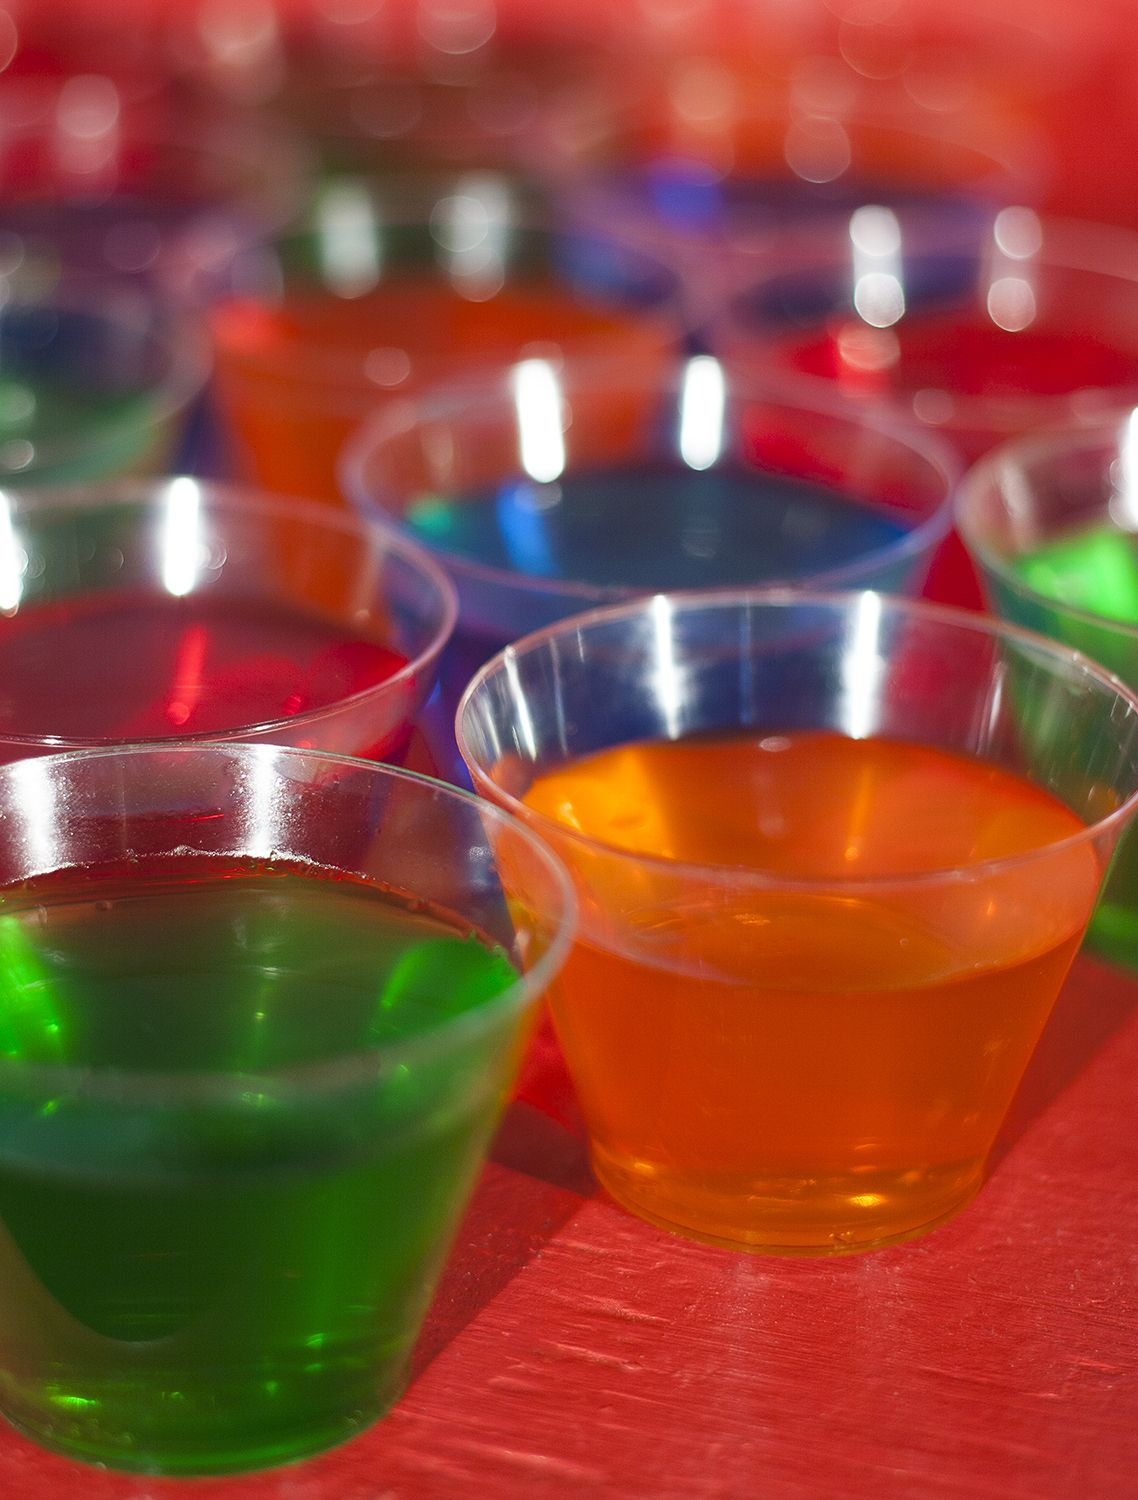 Jello shot learn how to make the fun party shot